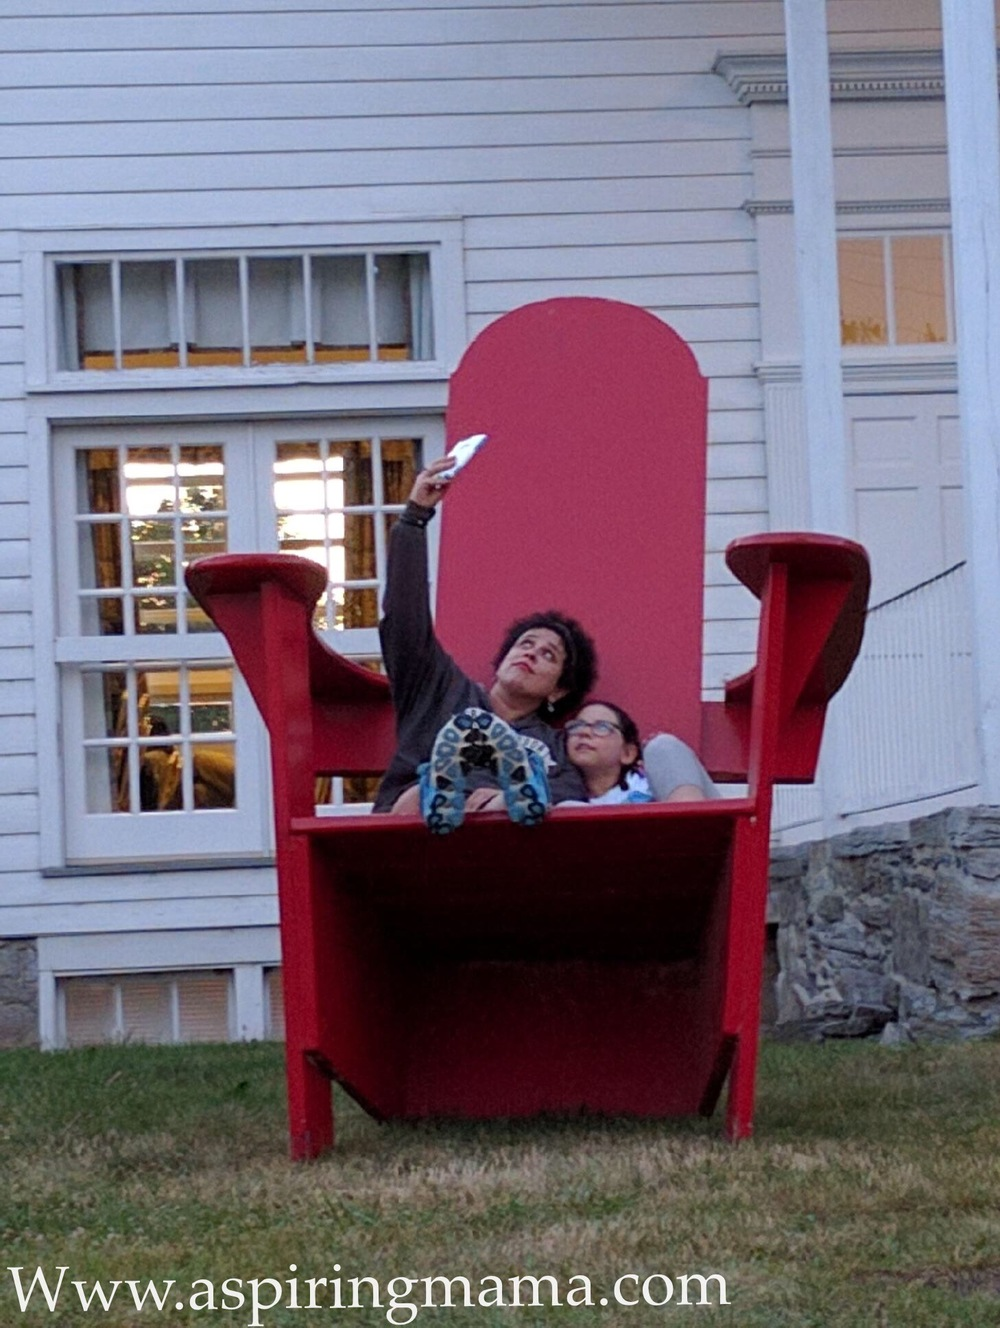 We found the Big Red Chair before we left. Mission accomplished.